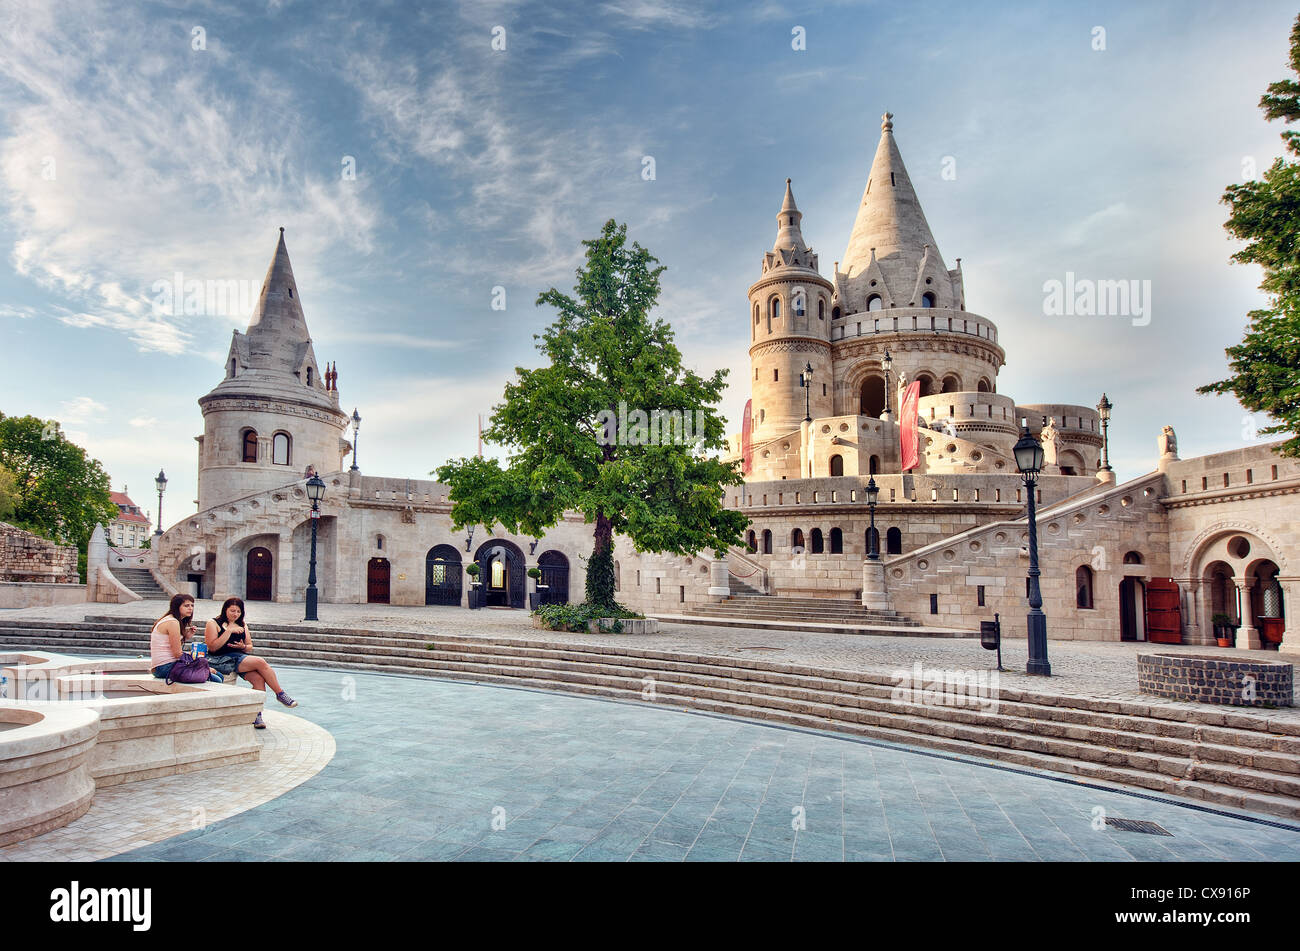 The Halászbástya or Fisherman's Bastion on the Castle hill in Budapest, is a terrace in neo-Gothic - Stock Image